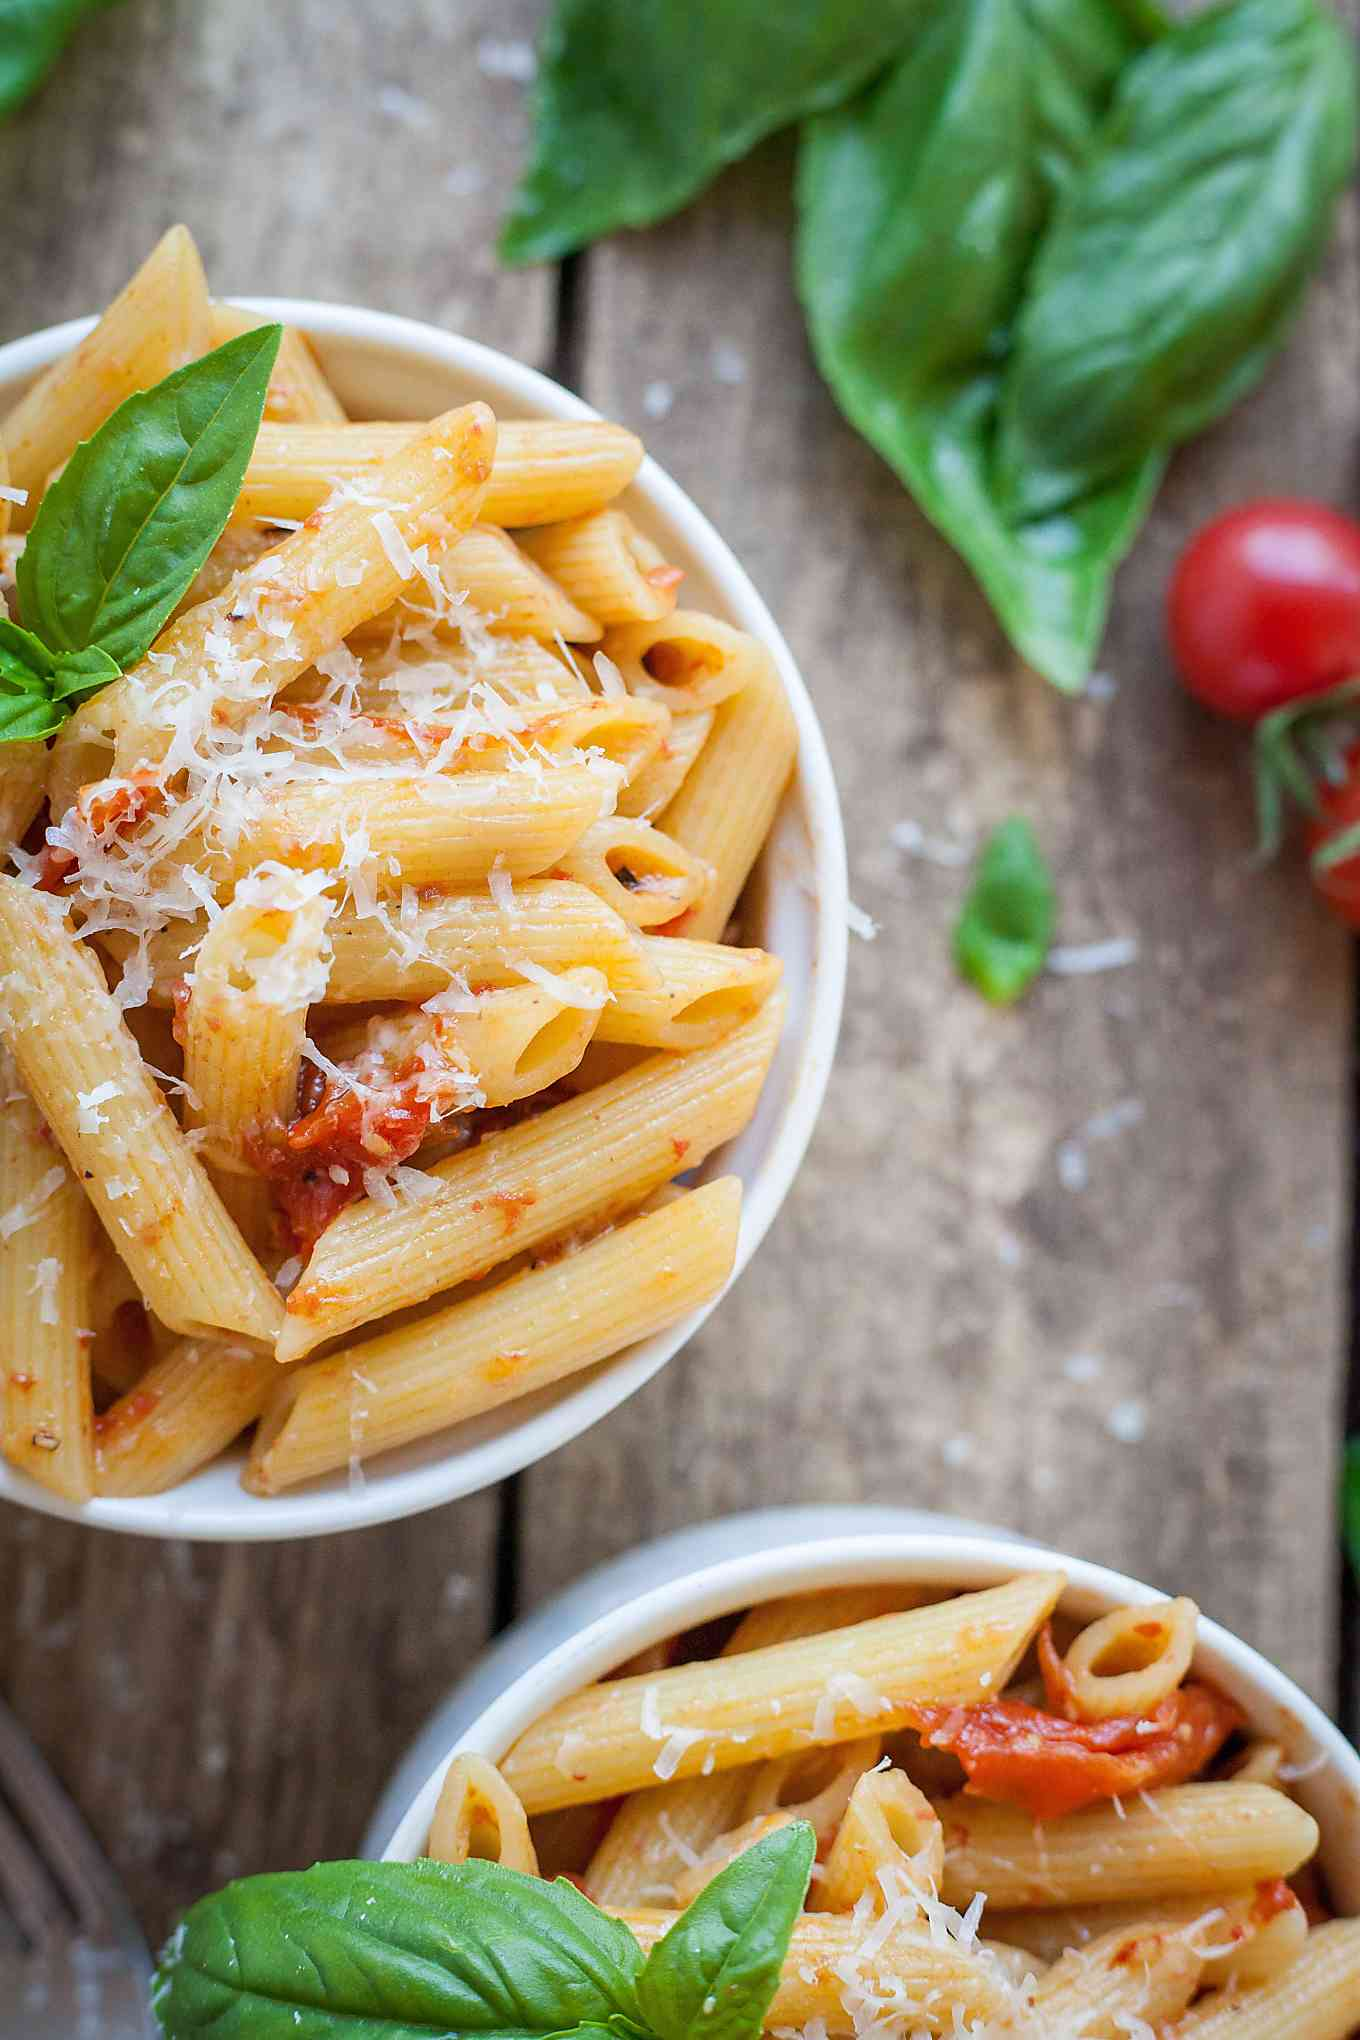 two small bowls of pasta with tomatoes and basil